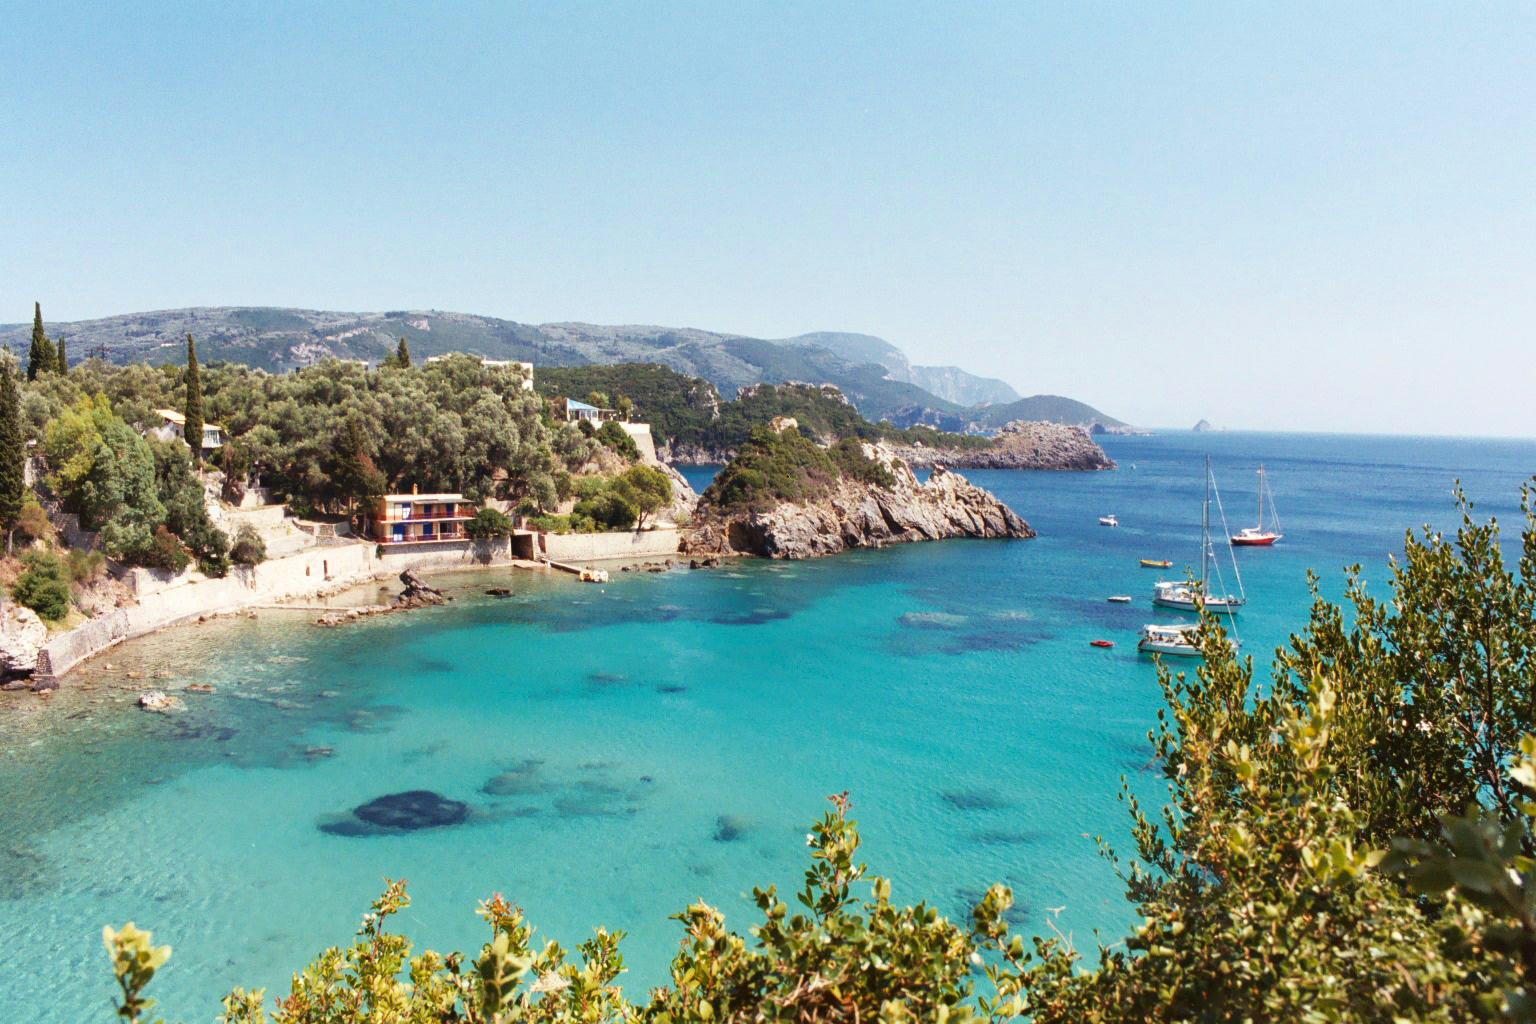 Swimming in this water is just one of the fun things to do on Corfu